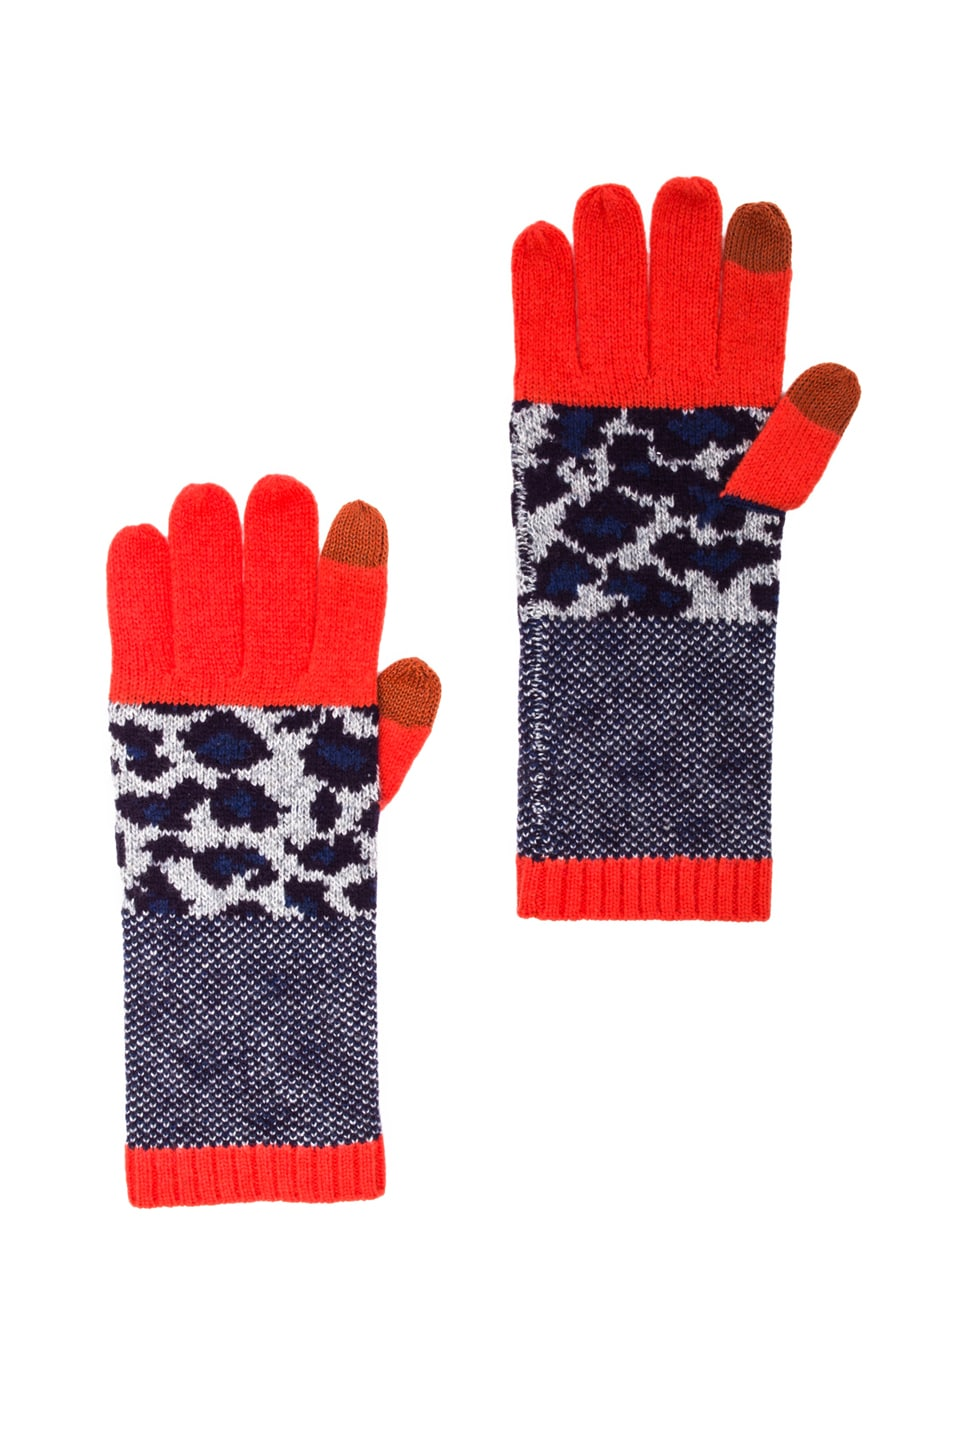 Marc by Marc Jacobs Lenora Leopard Glove in Royal Purple Multi